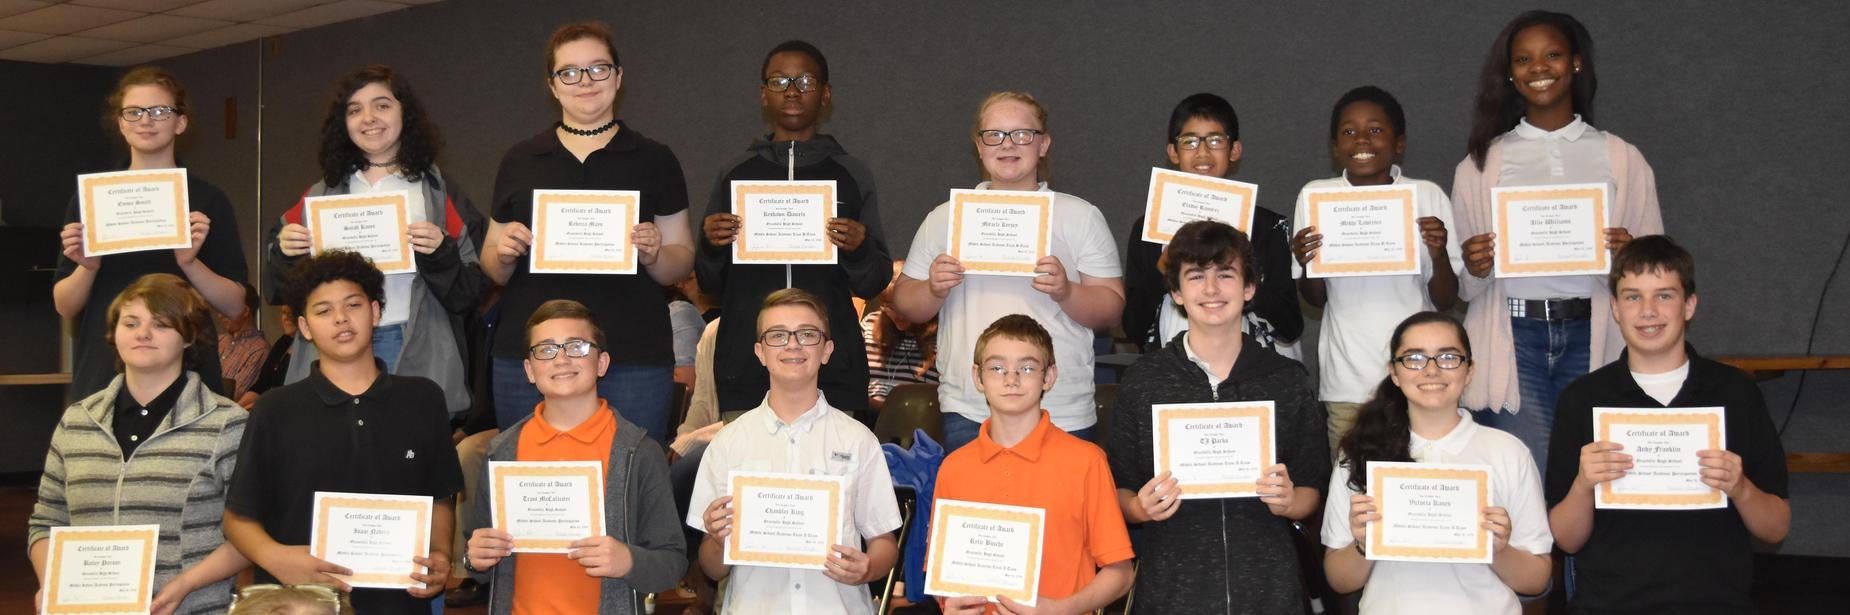 ghs students receiving certificates